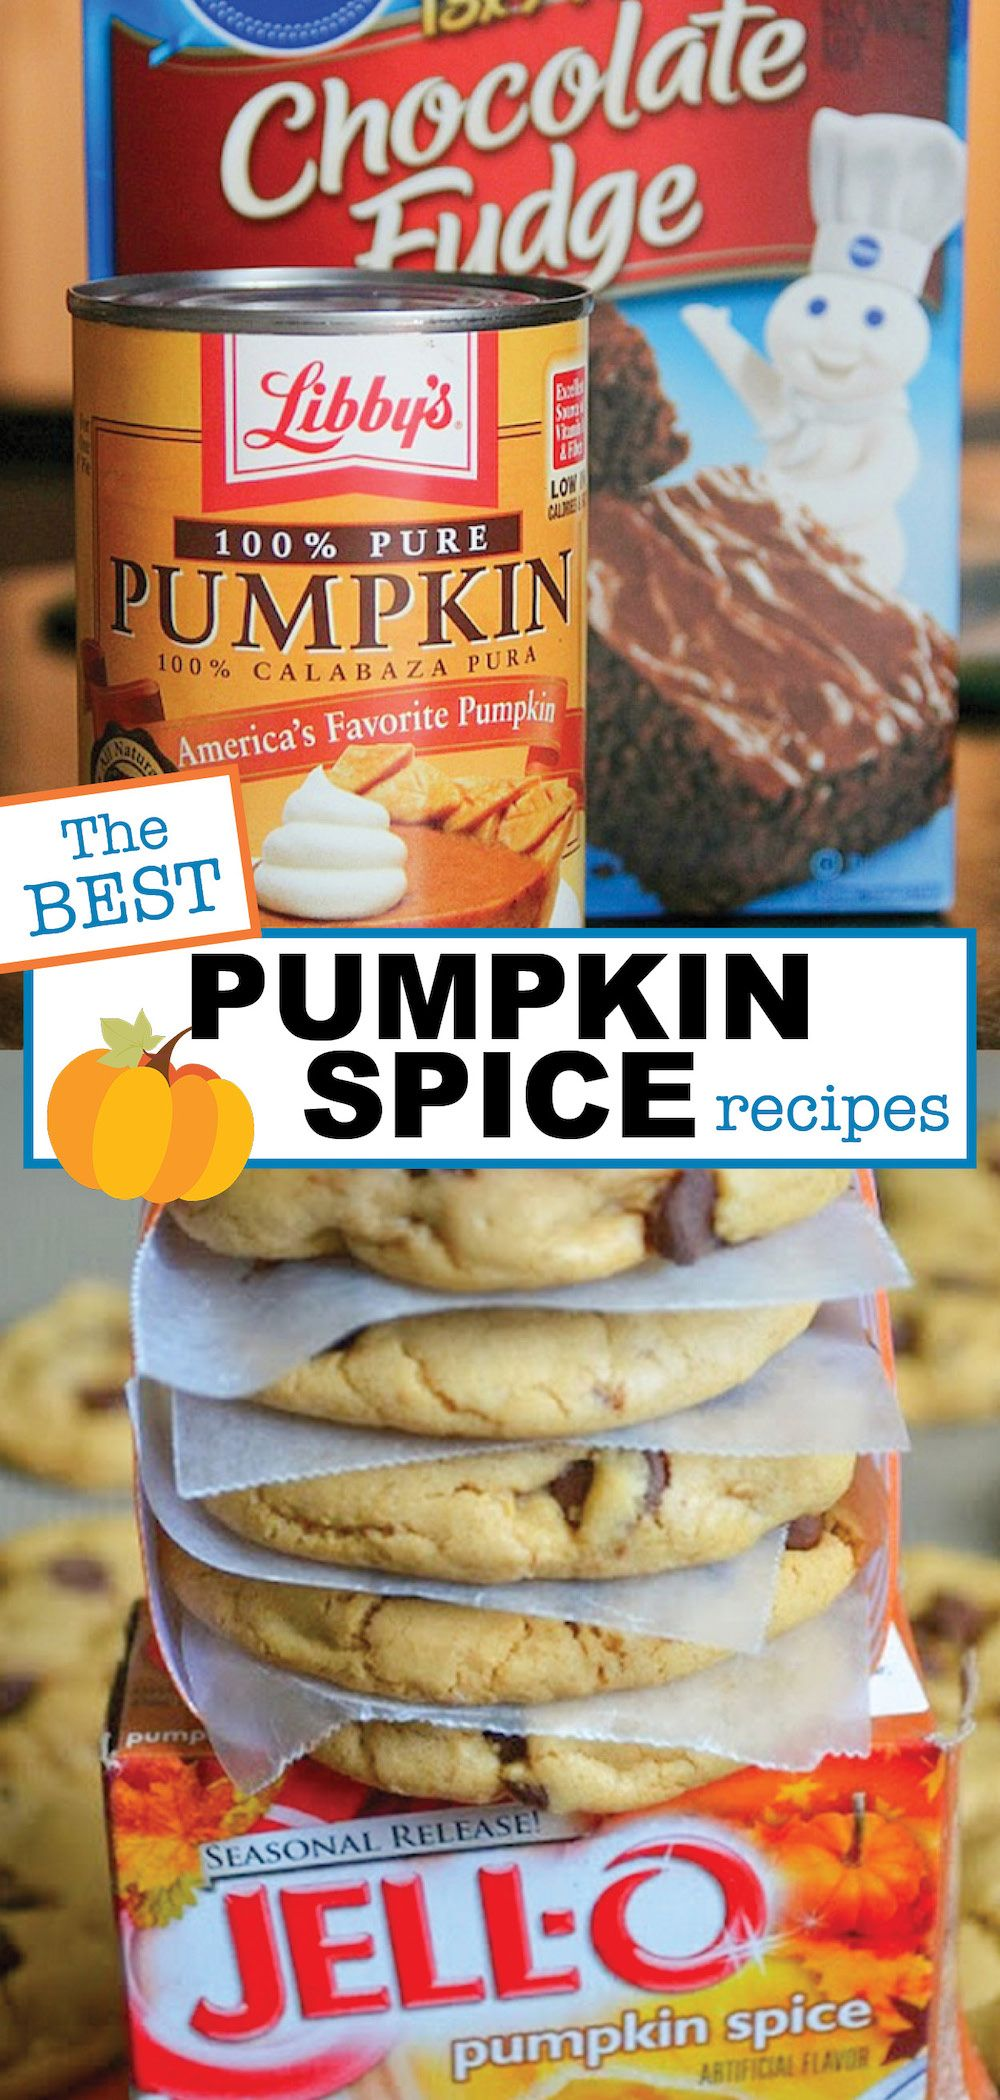 The BEST Pumpkin Spice Recipes #pumpkinspicecupcakes